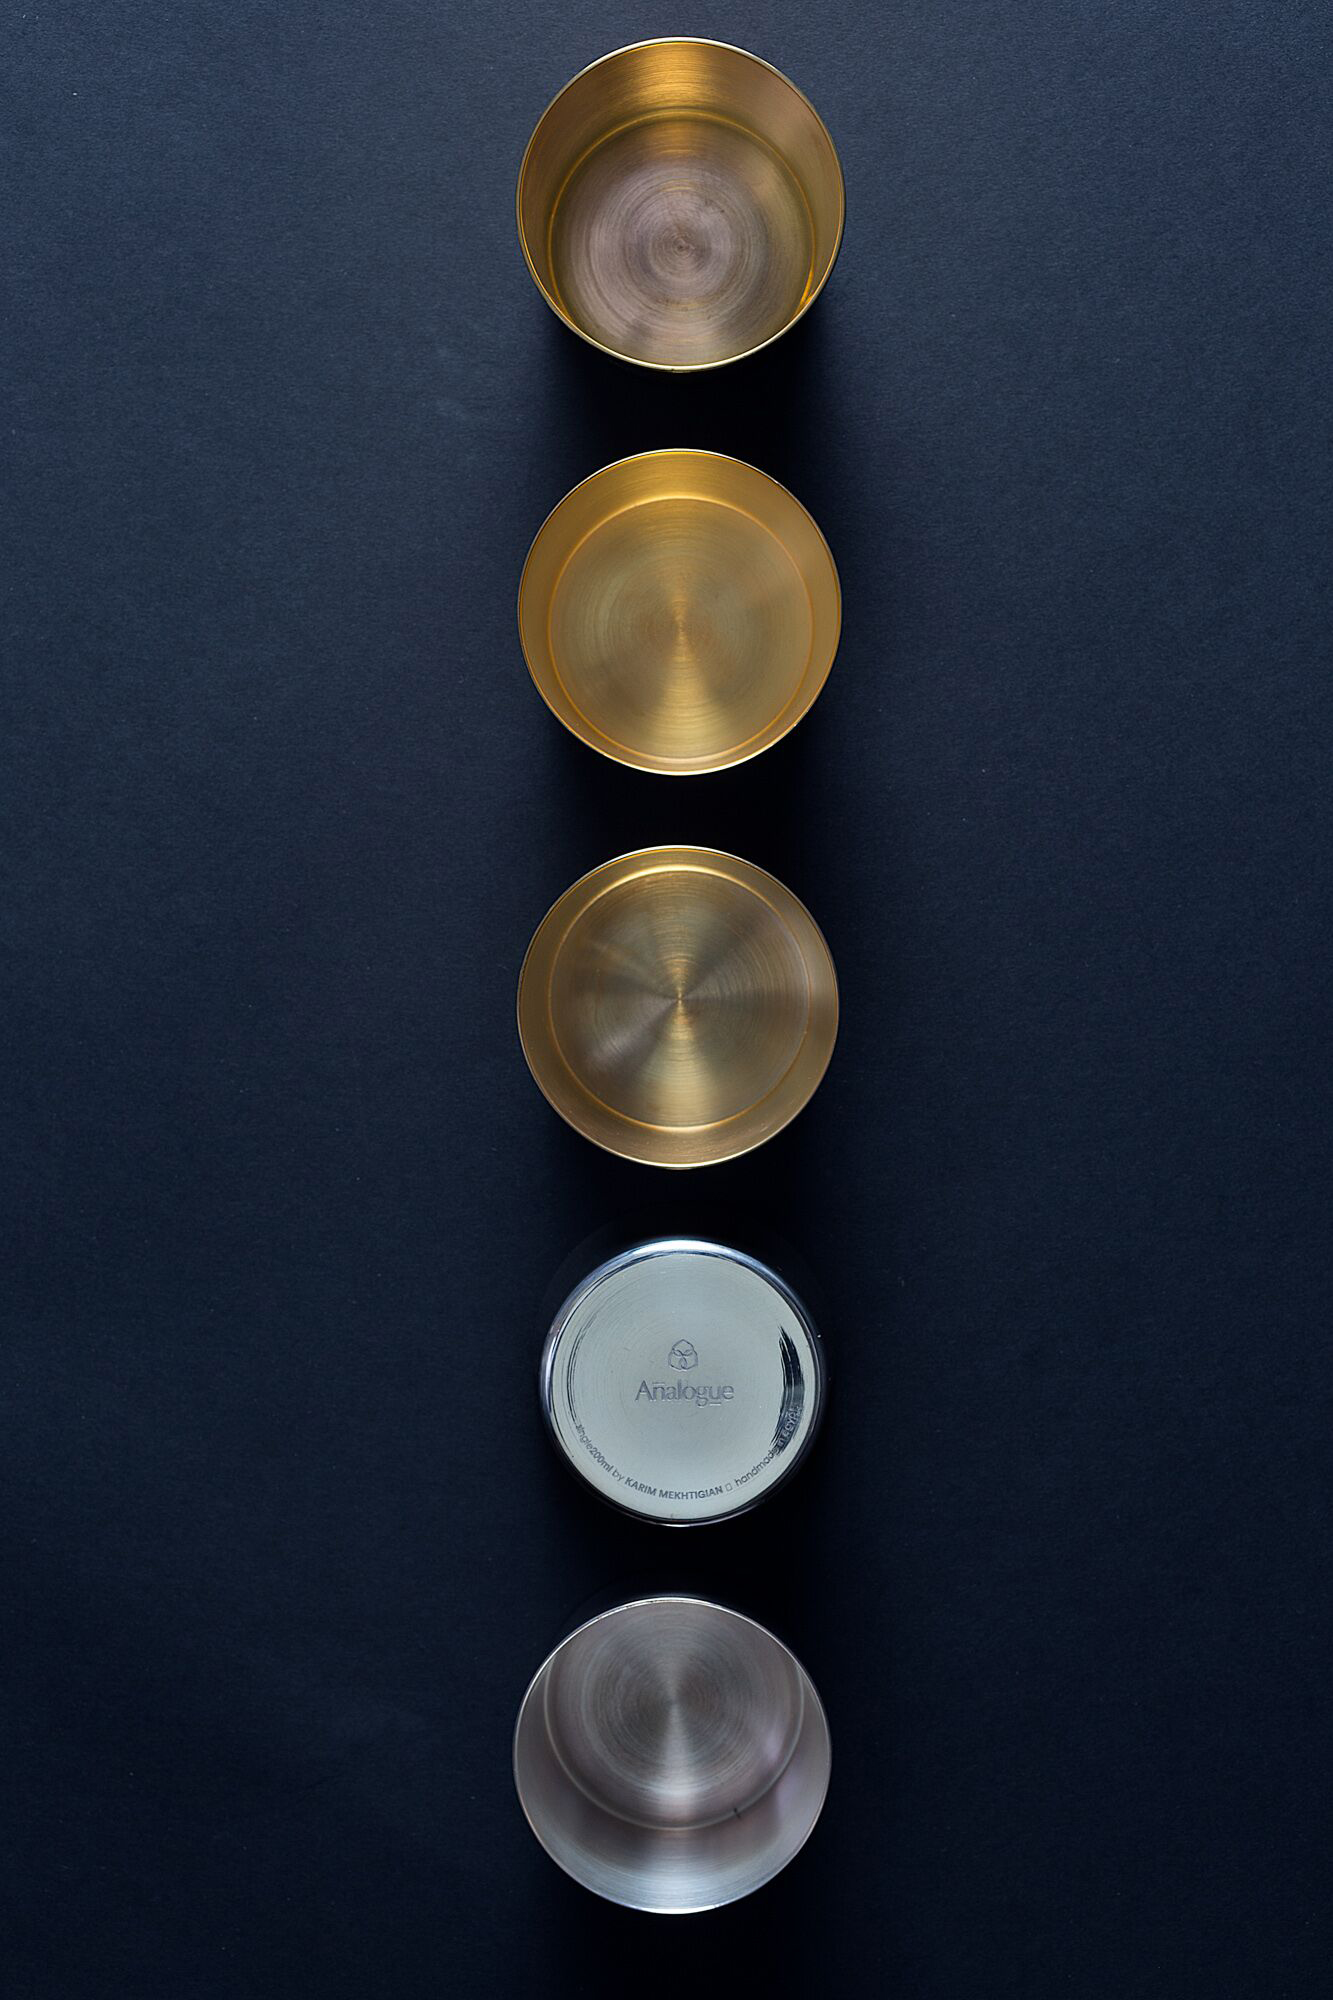 A series of cups from Analogue collection.